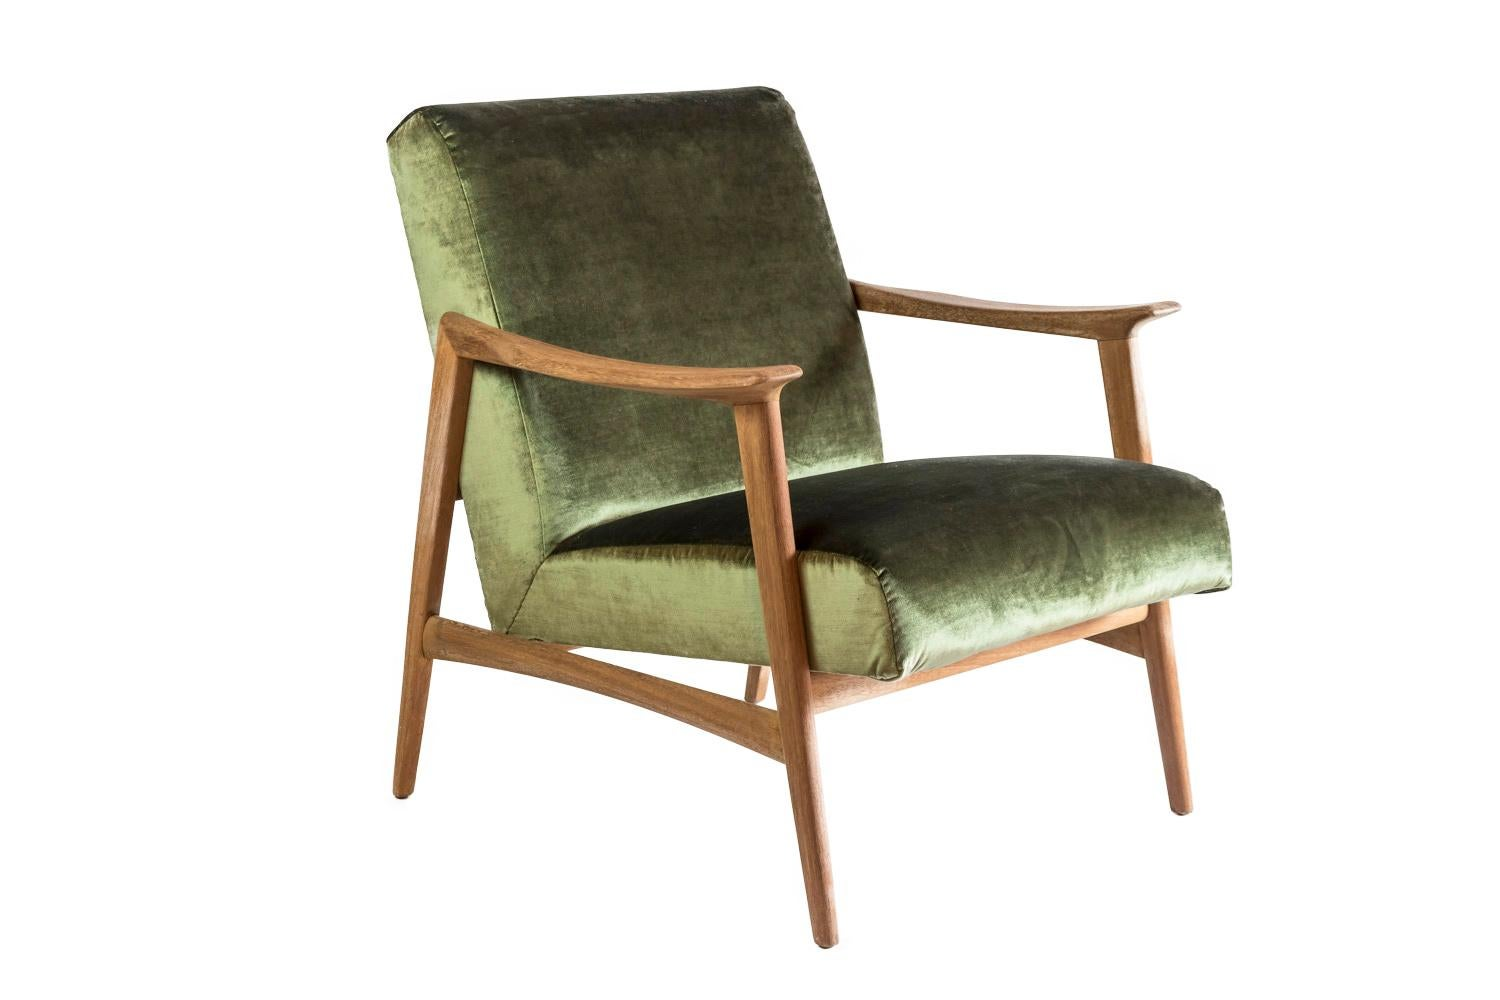 Arne Hovmand Olsen Paire De Fauteuils Scandinaves Teck Et Velours Vers 1970 For Sale At 1stdibs